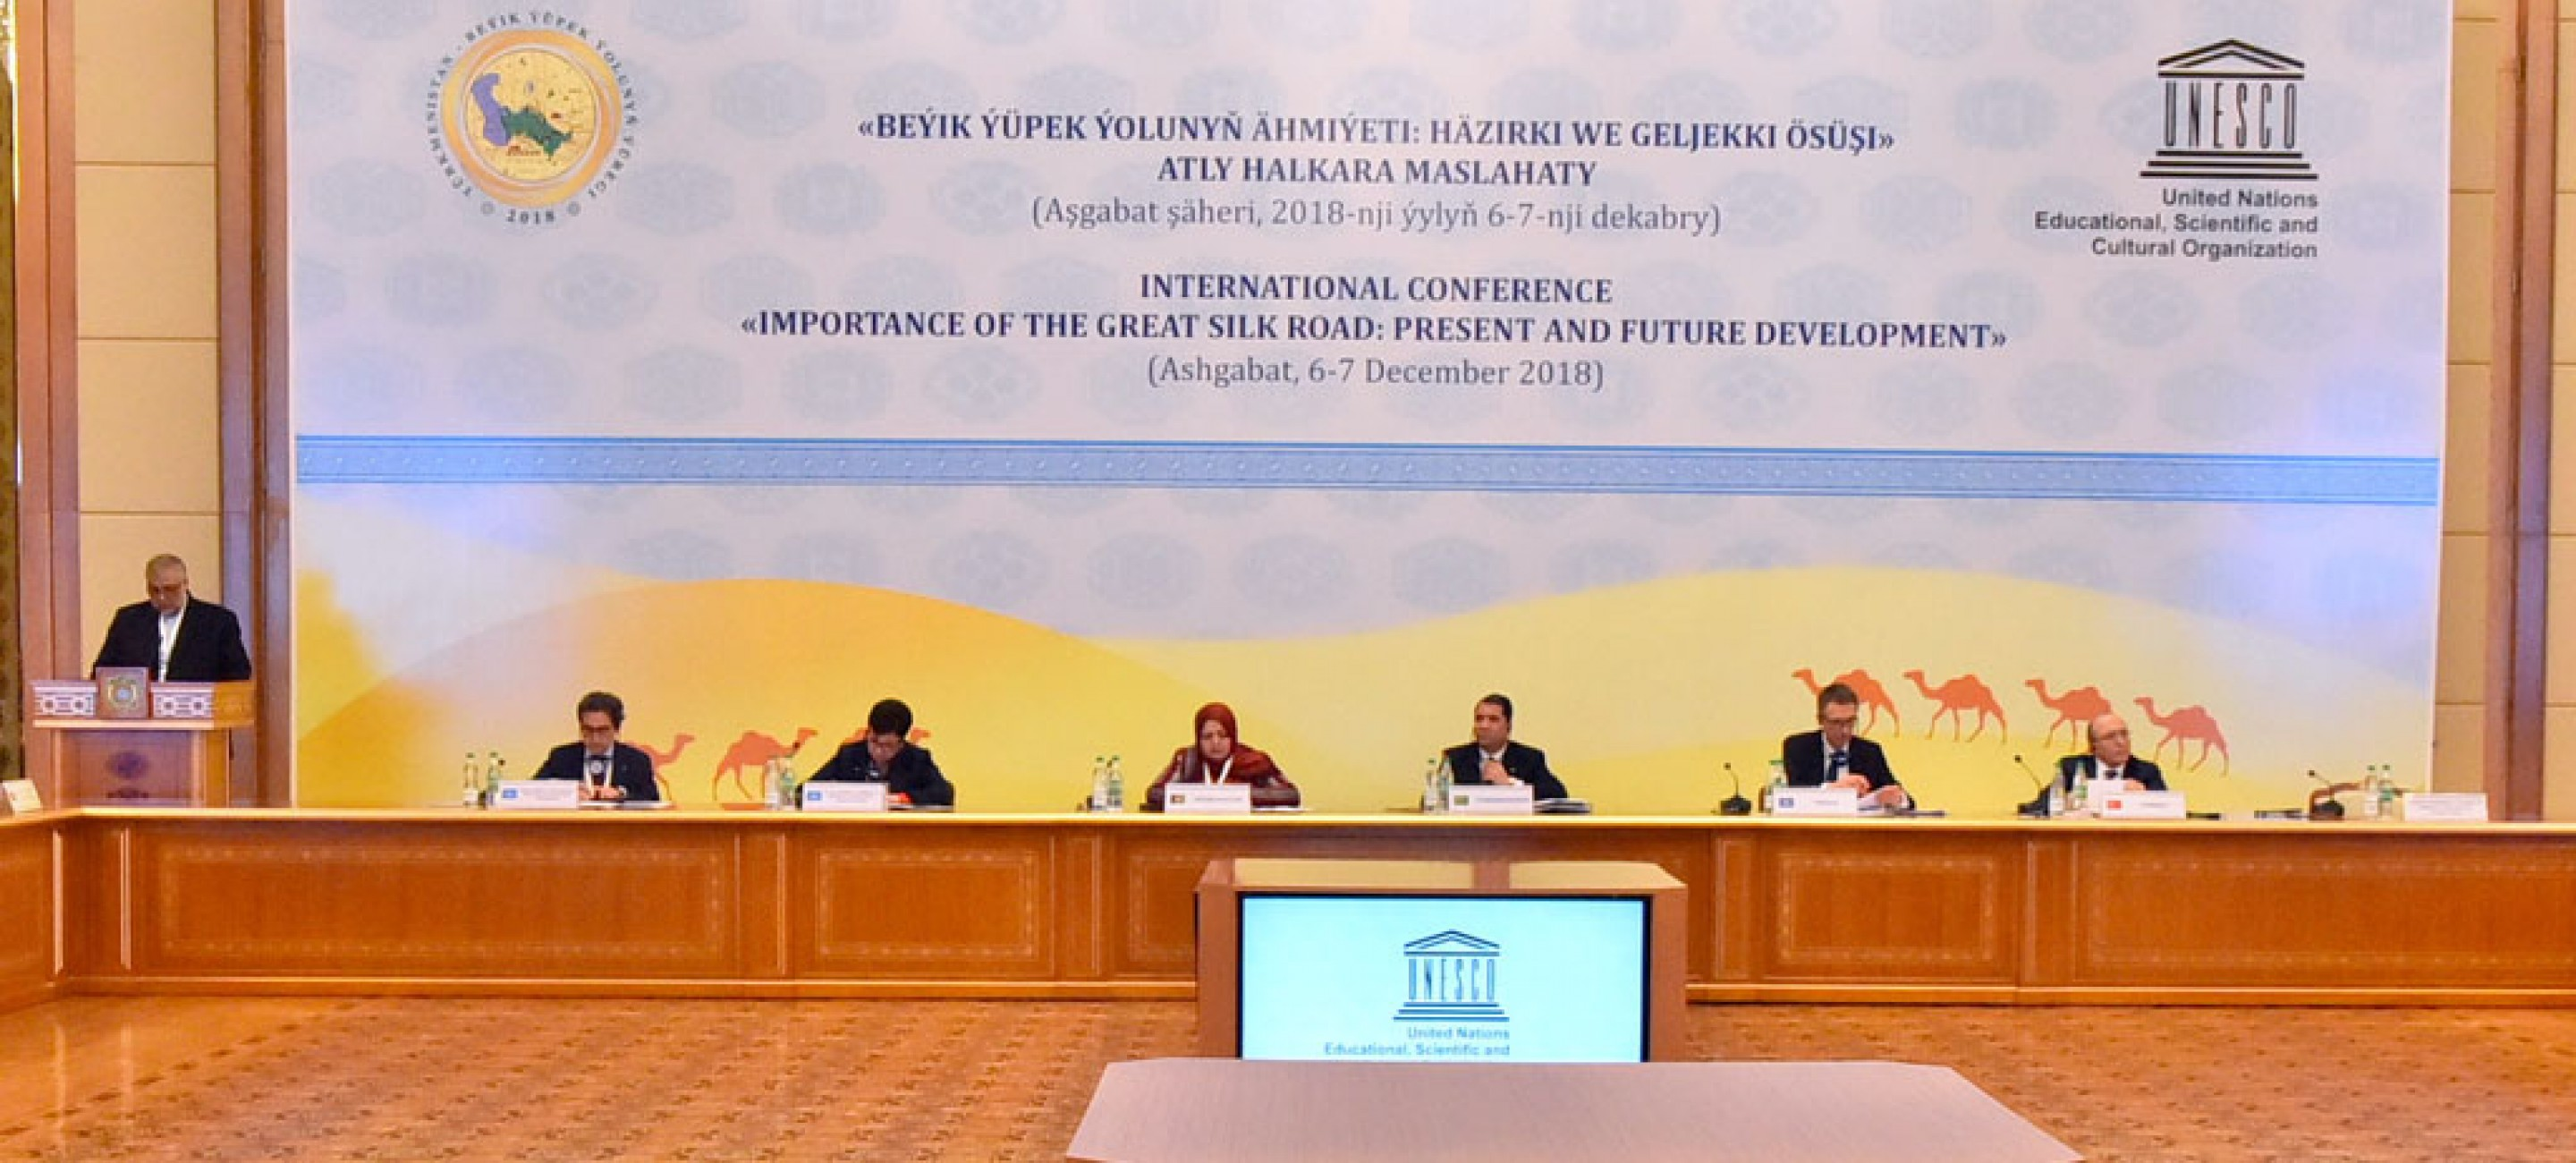 THE INTERNATIONAL CONFERENCE ON MINISTERS' LEVEL HAS FINISHED ITS WORK